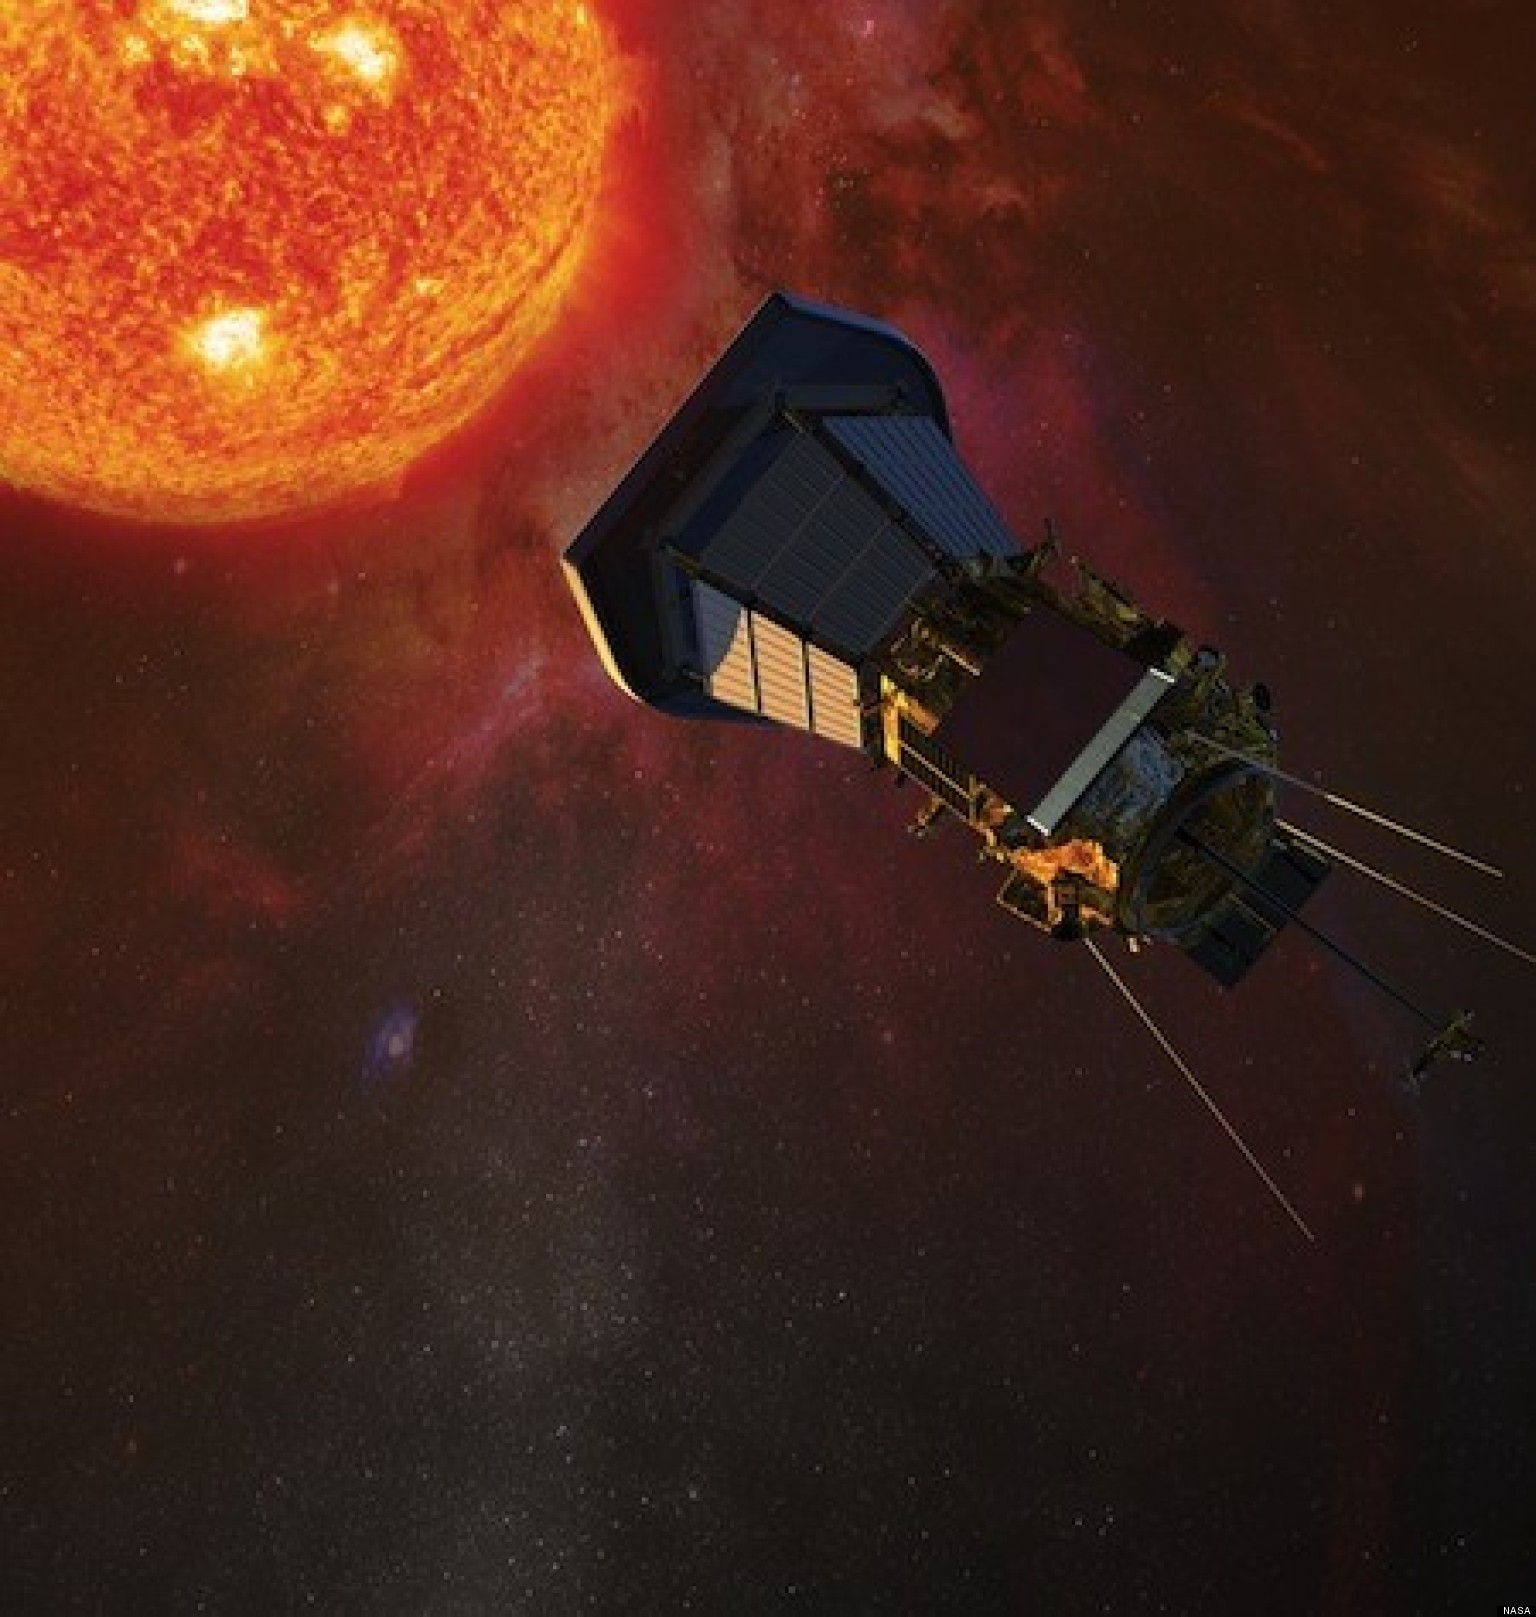 Fastest Spacecraft Record May Be Broken In 2018 By NASA's ...